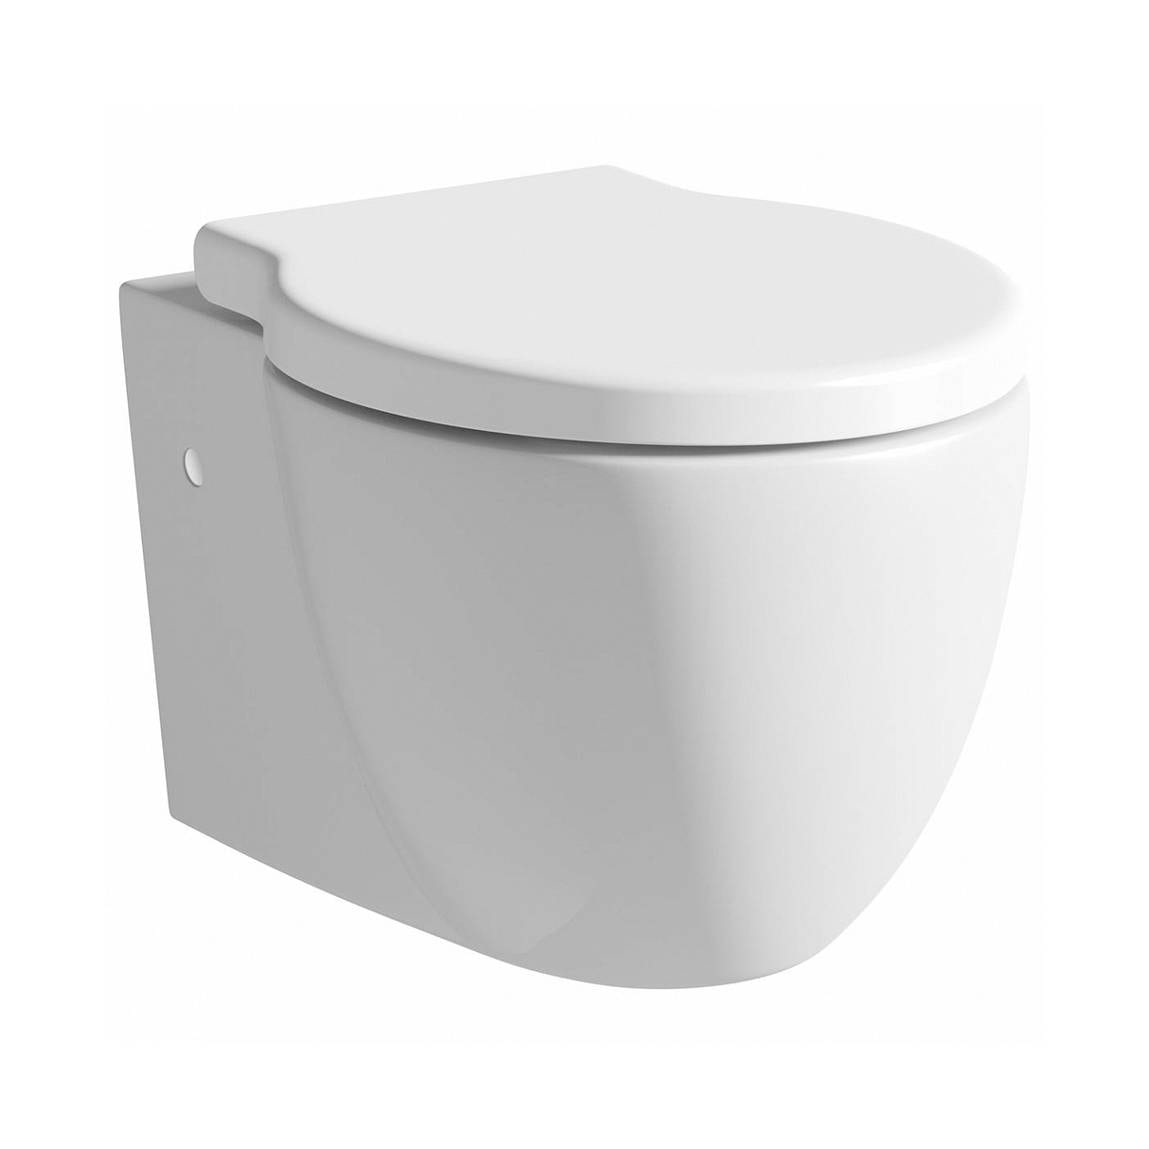 Maine Wall Hung Toilet Inc Luxury Soft Close Seat